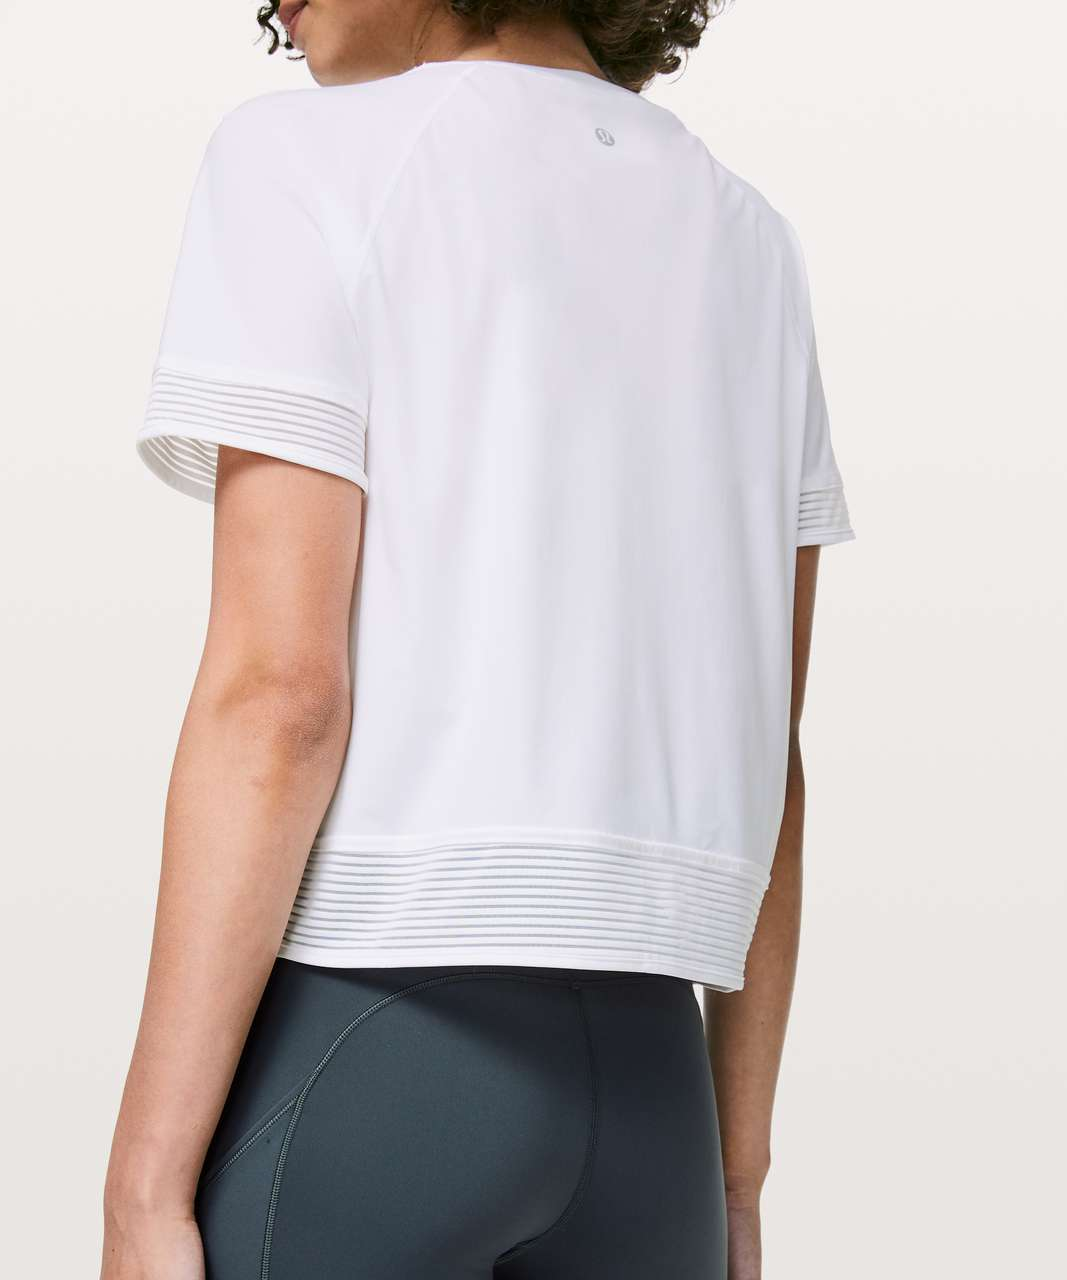 Lululemon Stripe In Stride Short Sleeve - White